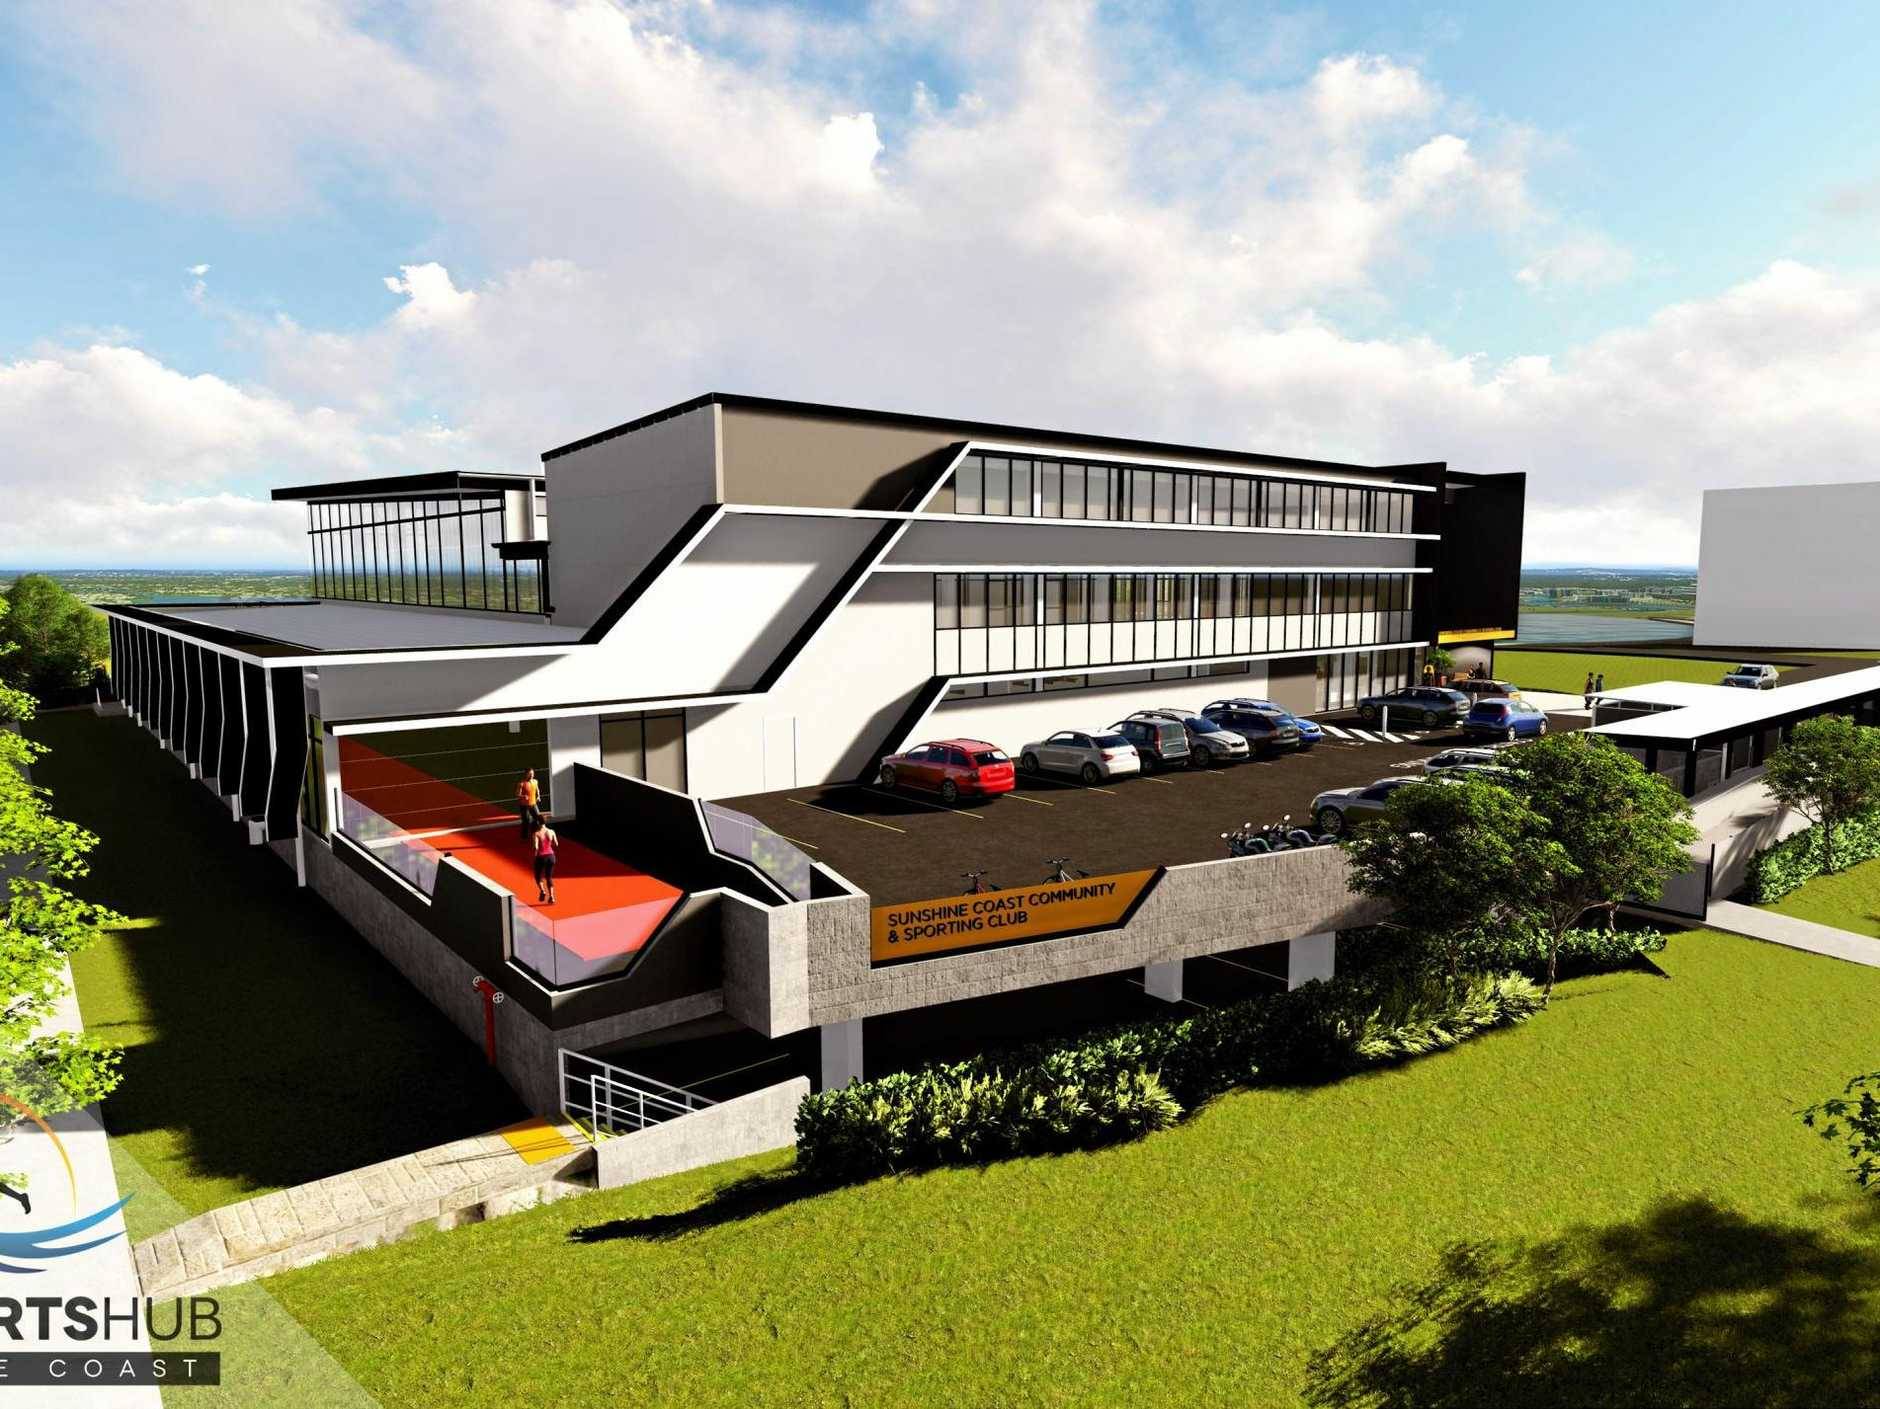 NEW: The Sports Hub, stage one of the new Coast sporting facility, is on its way.